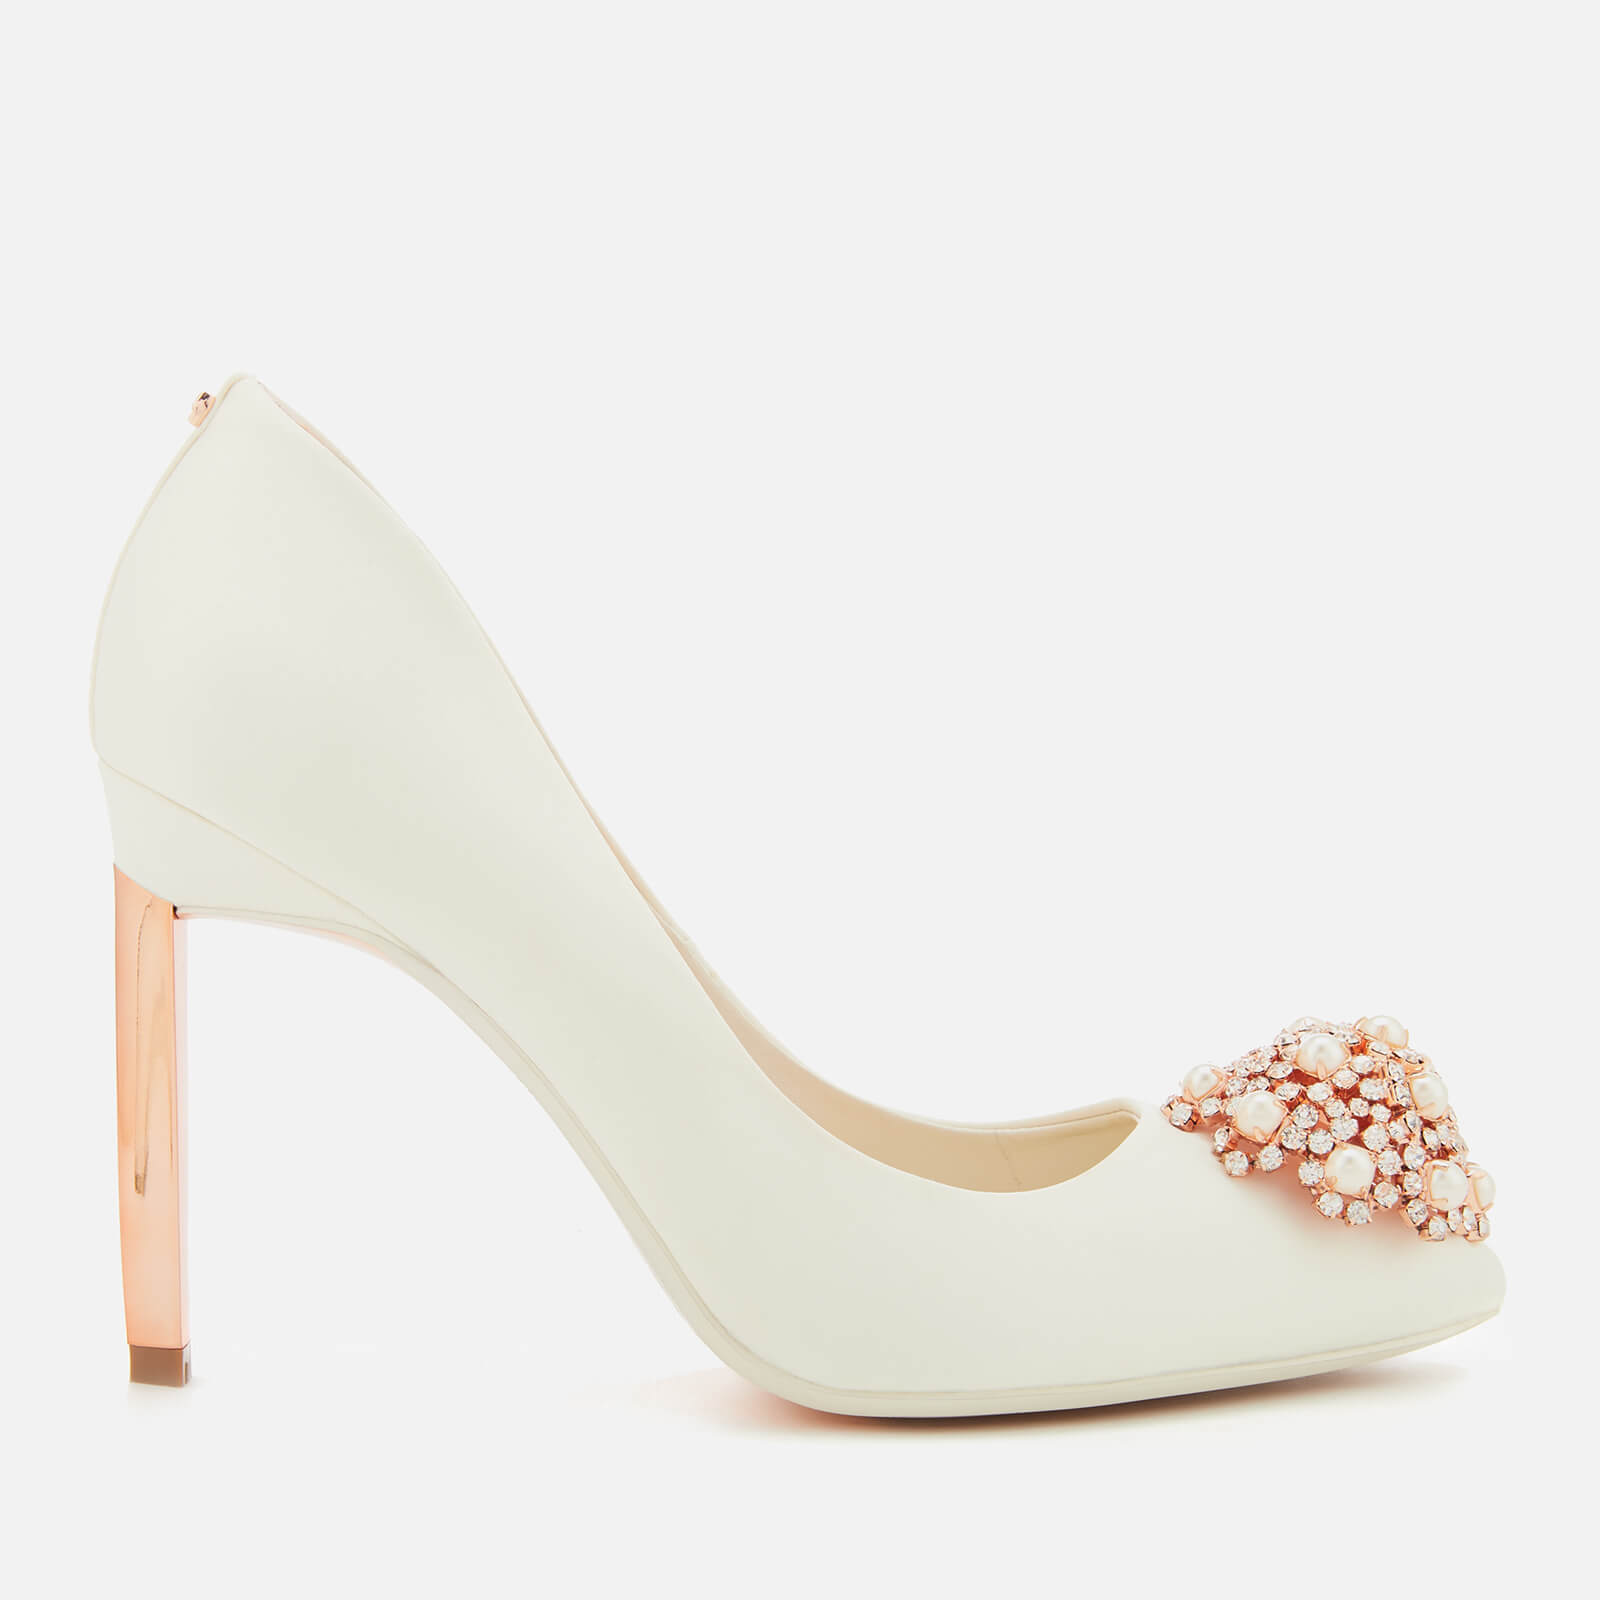 18617814e Ted Baker Women s Peetch 2 Satin Court Shoes - Ivory Clothing ...